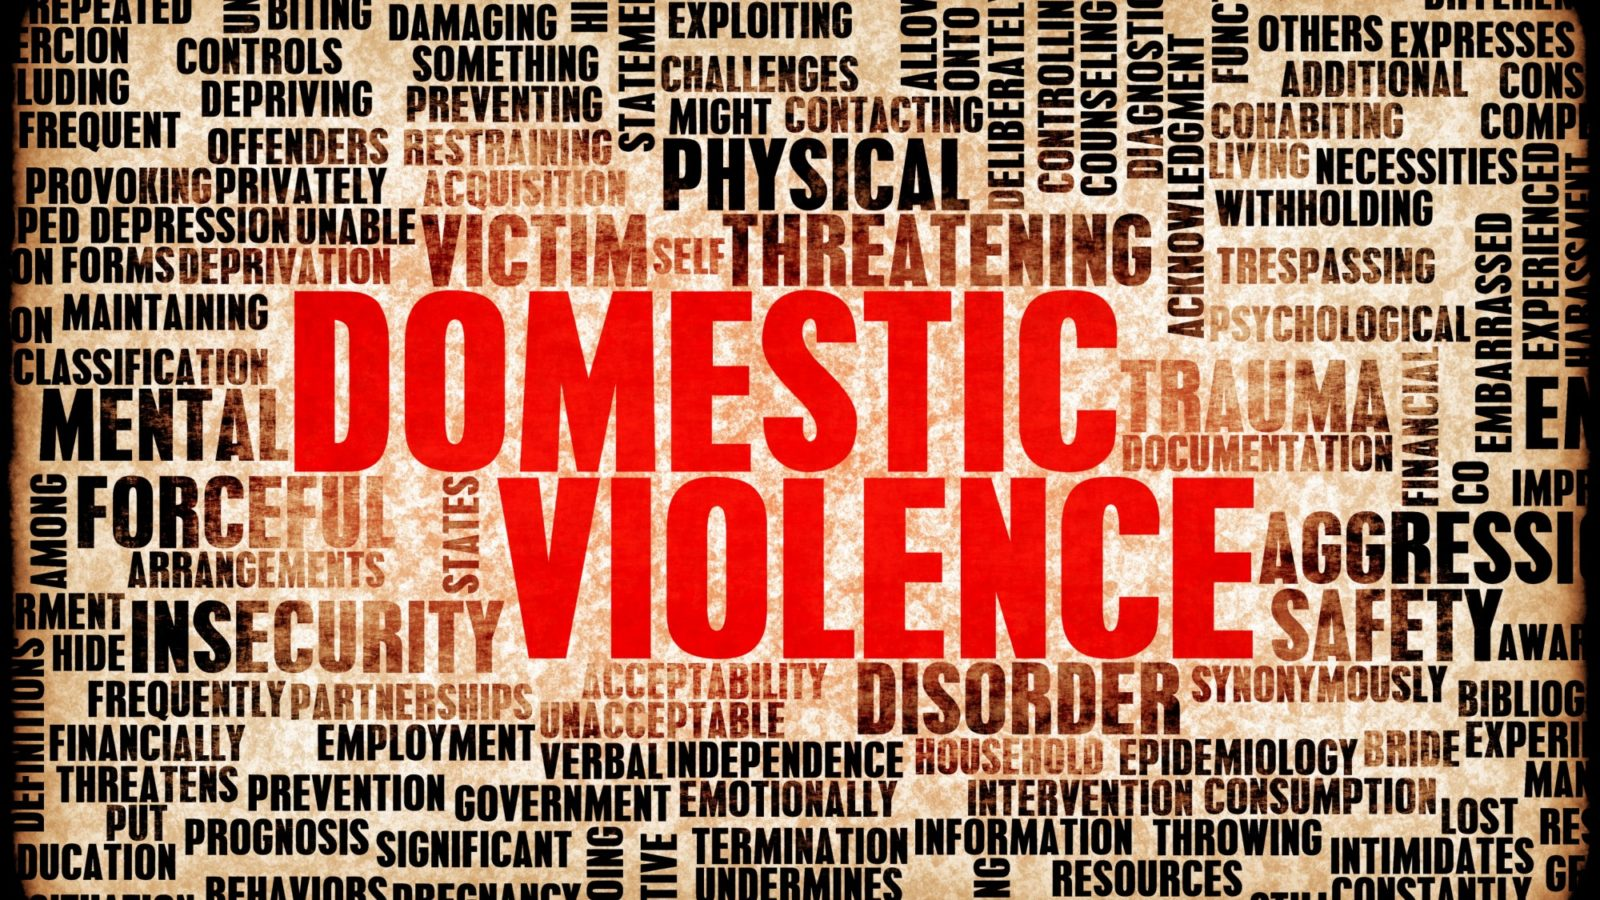 Domestic Violence Advice and Support | Evans Solicitors Buckinghamshire